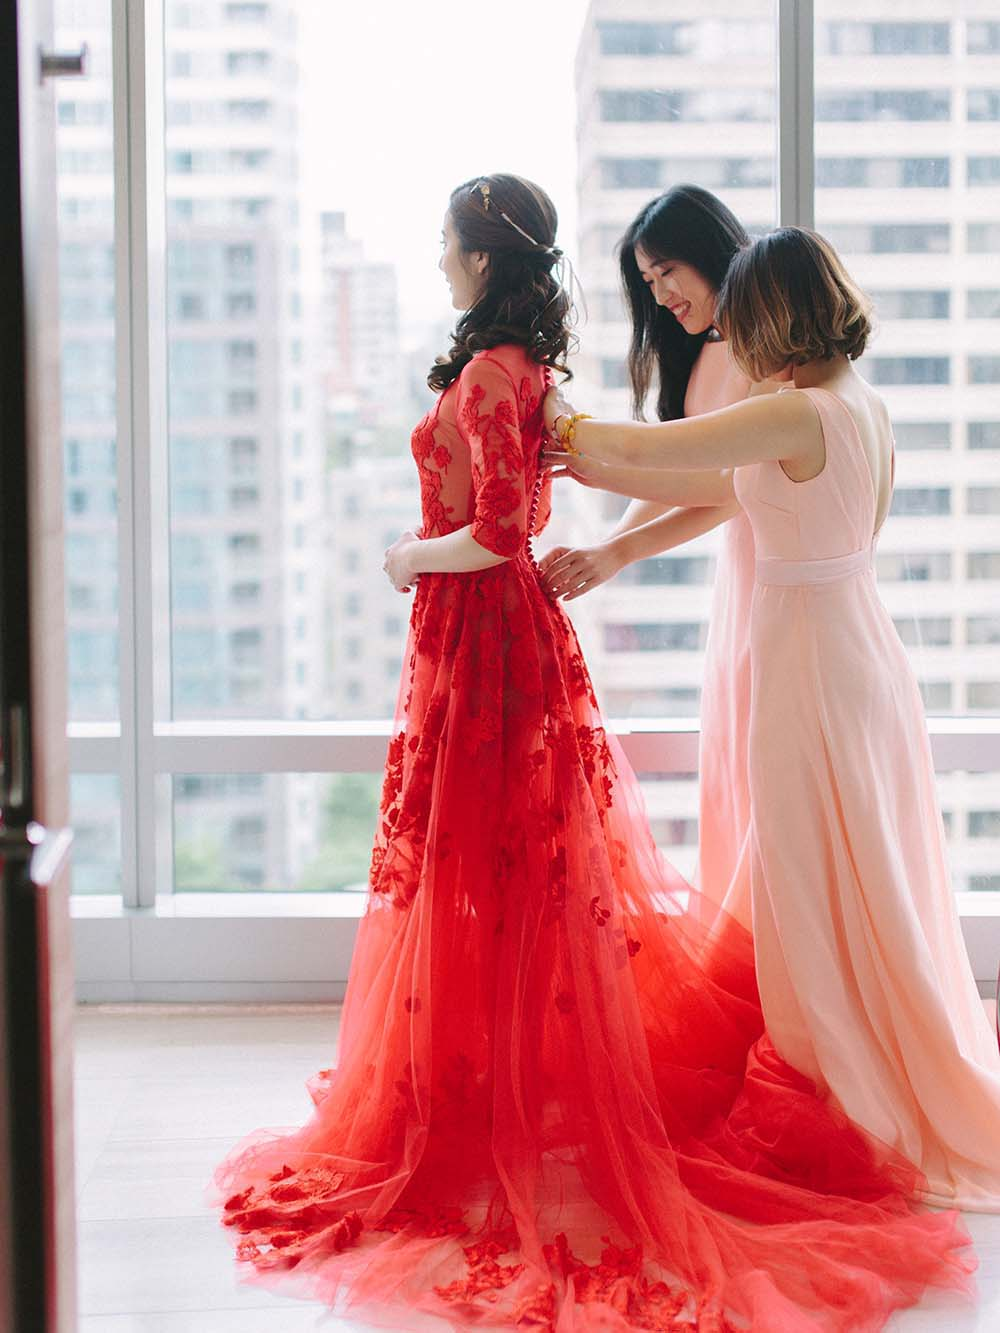 Every Single Detail You Need For A Valentine's Day Inspired Wedding - red dress